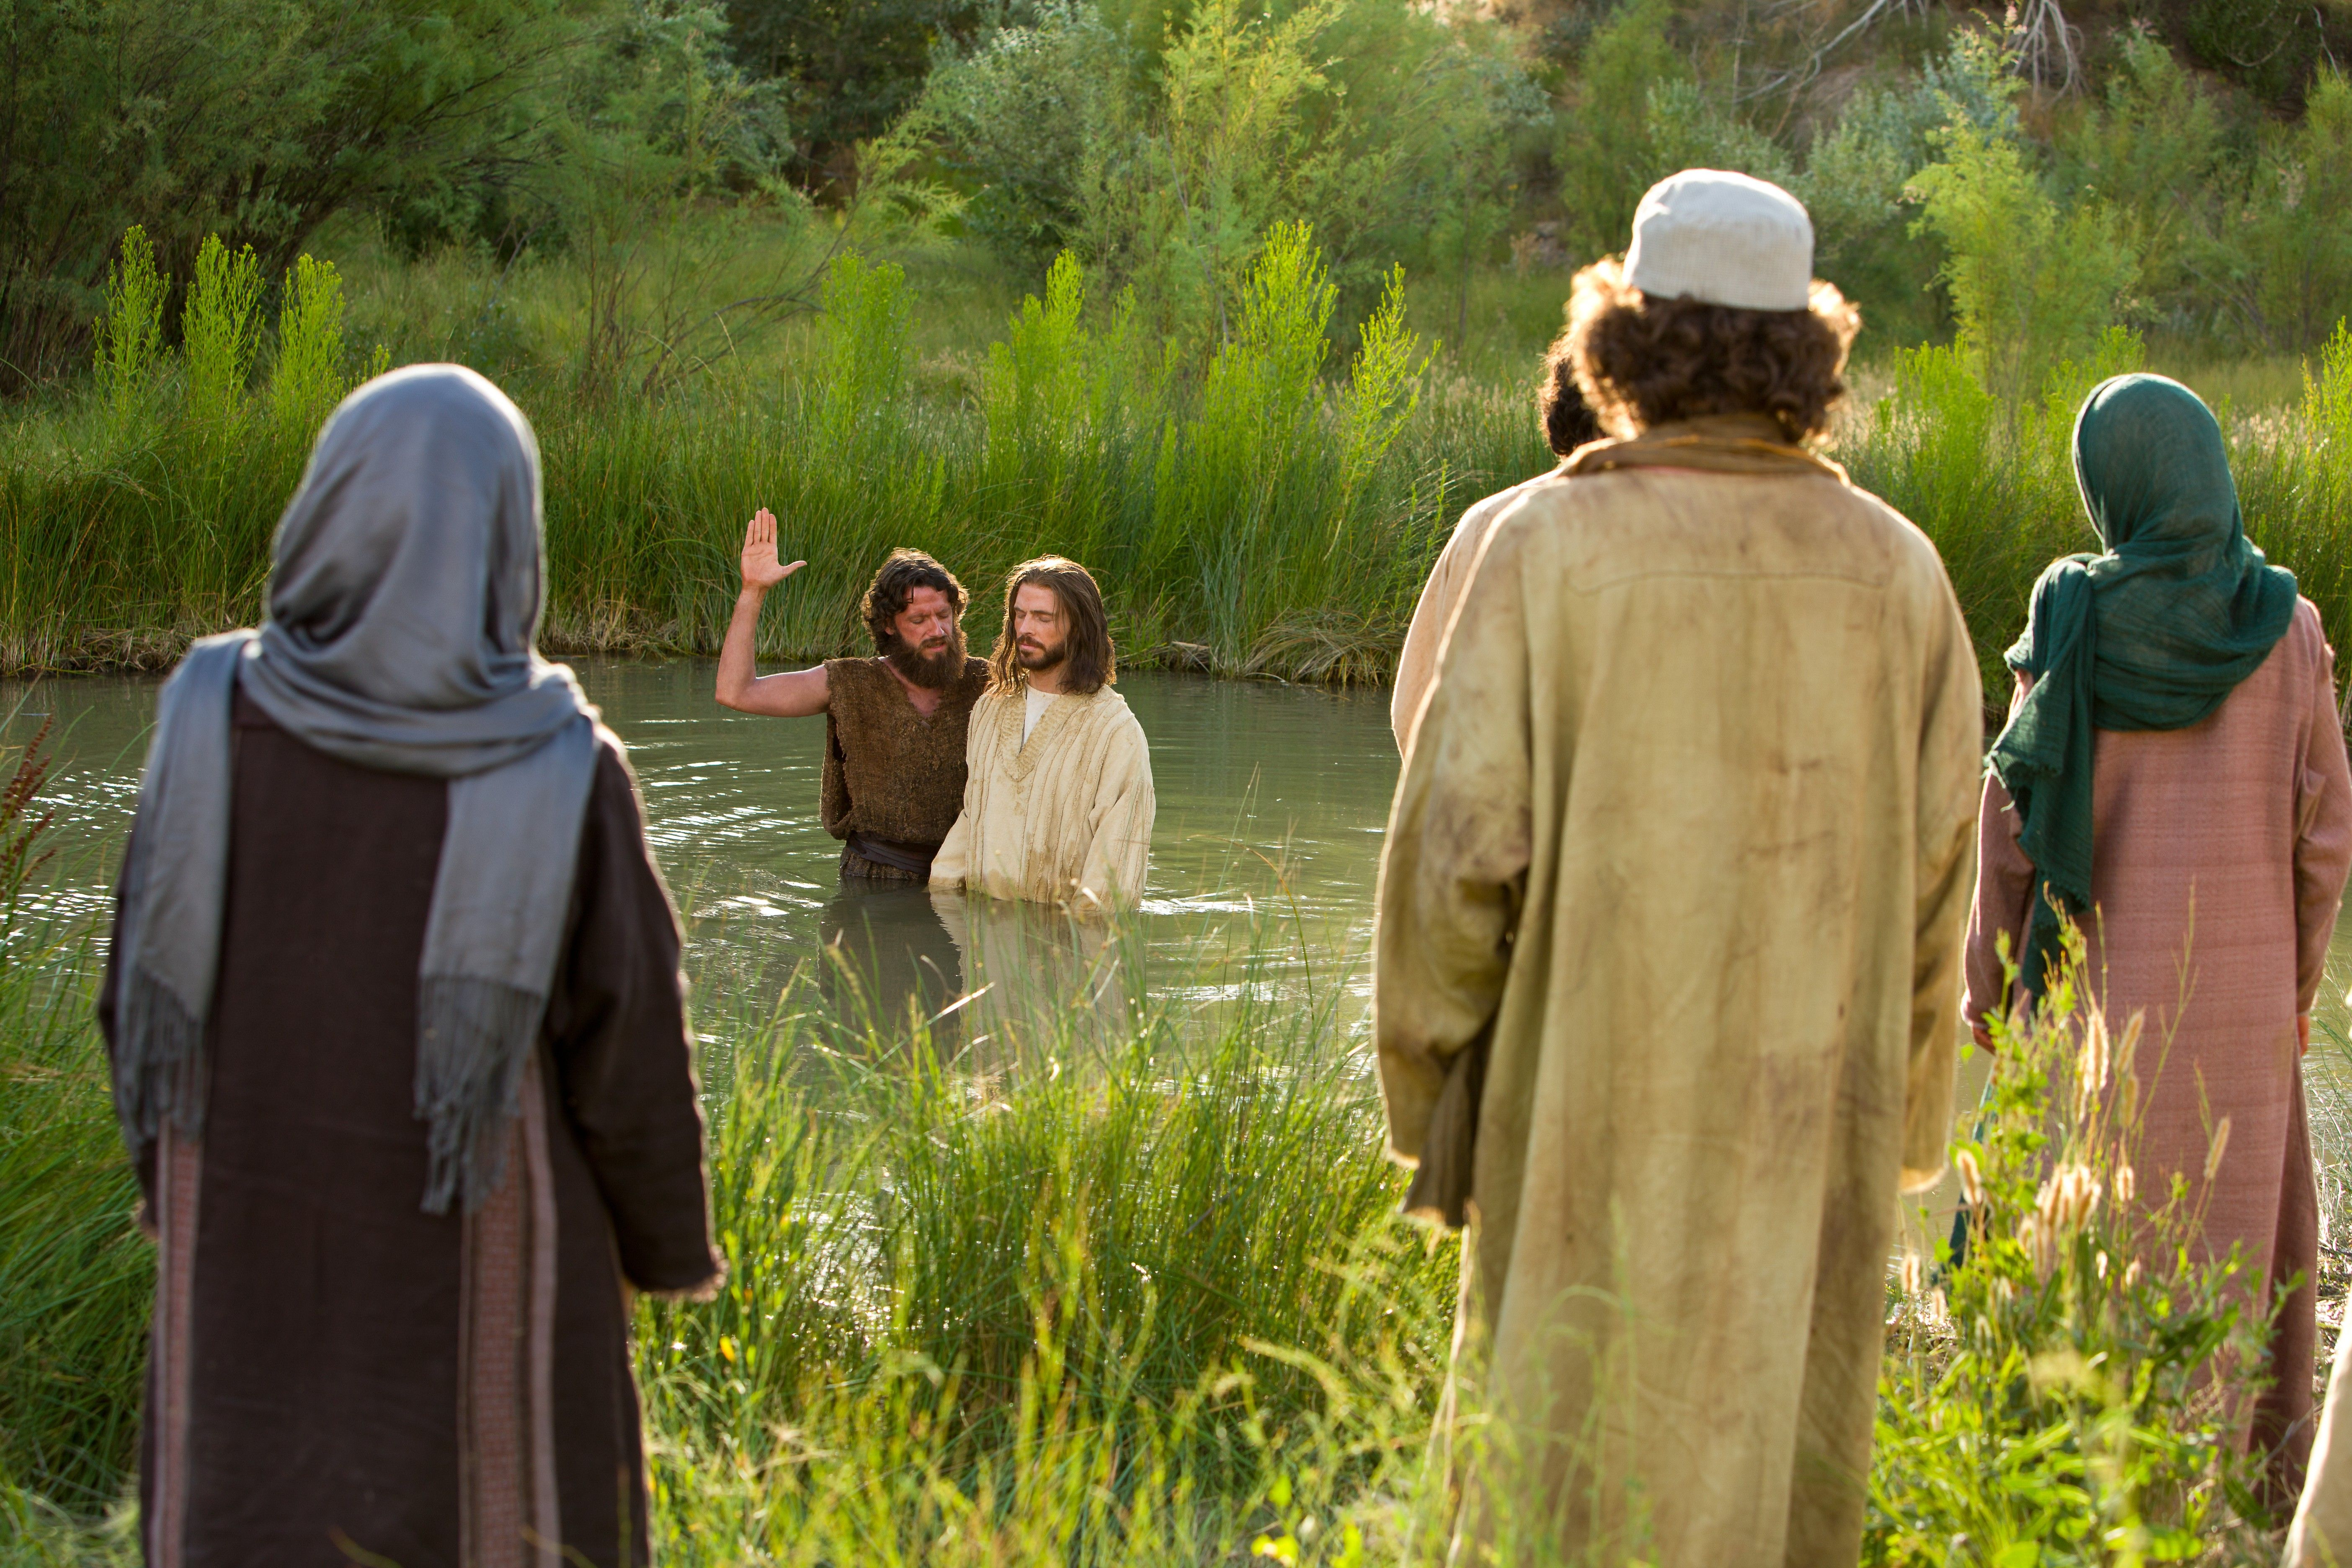 John the Baptist baptizes the Savior in the River Jordan as others look on.